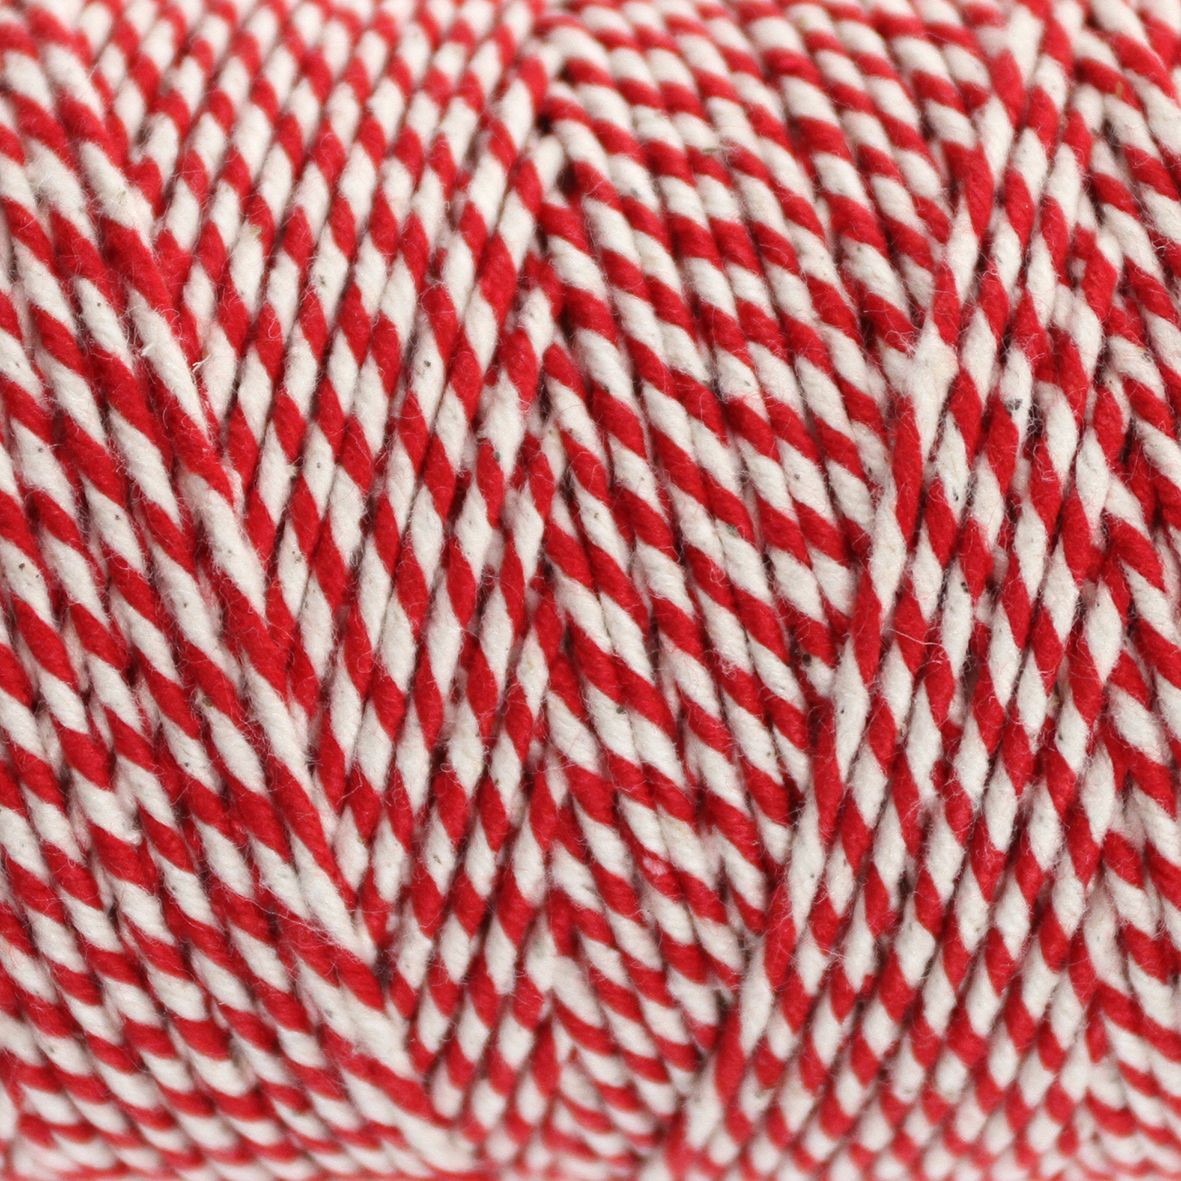 Parcel String and Baker's Twine category image